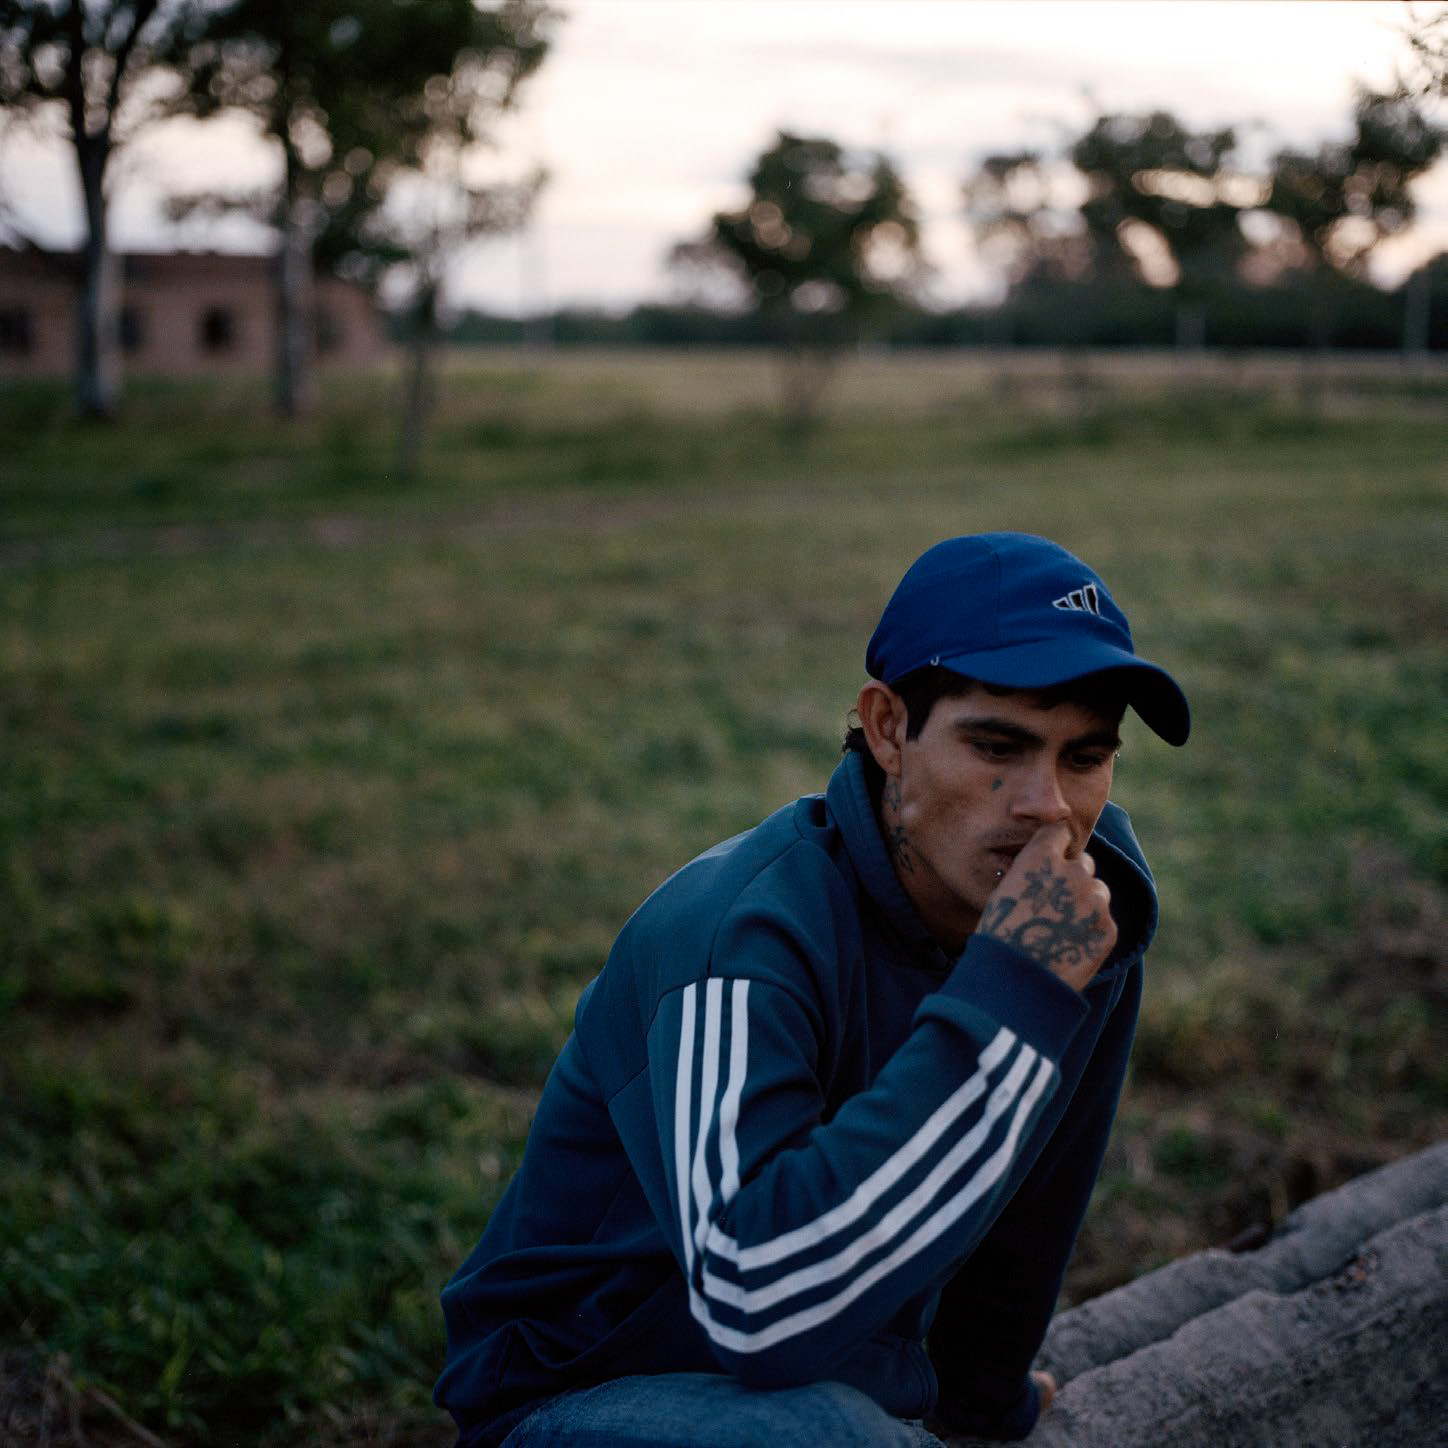 Maximiliano Fernandez, 21, near his girlfriend's house in Aviá Teraí where he lives with her family. There are few job opportunities in Aviá Teraí but Maximiliano works every now and then in the wood and charcoal industry in more remote areas, and is considering going to Buenos Aires to work, where his brother lives